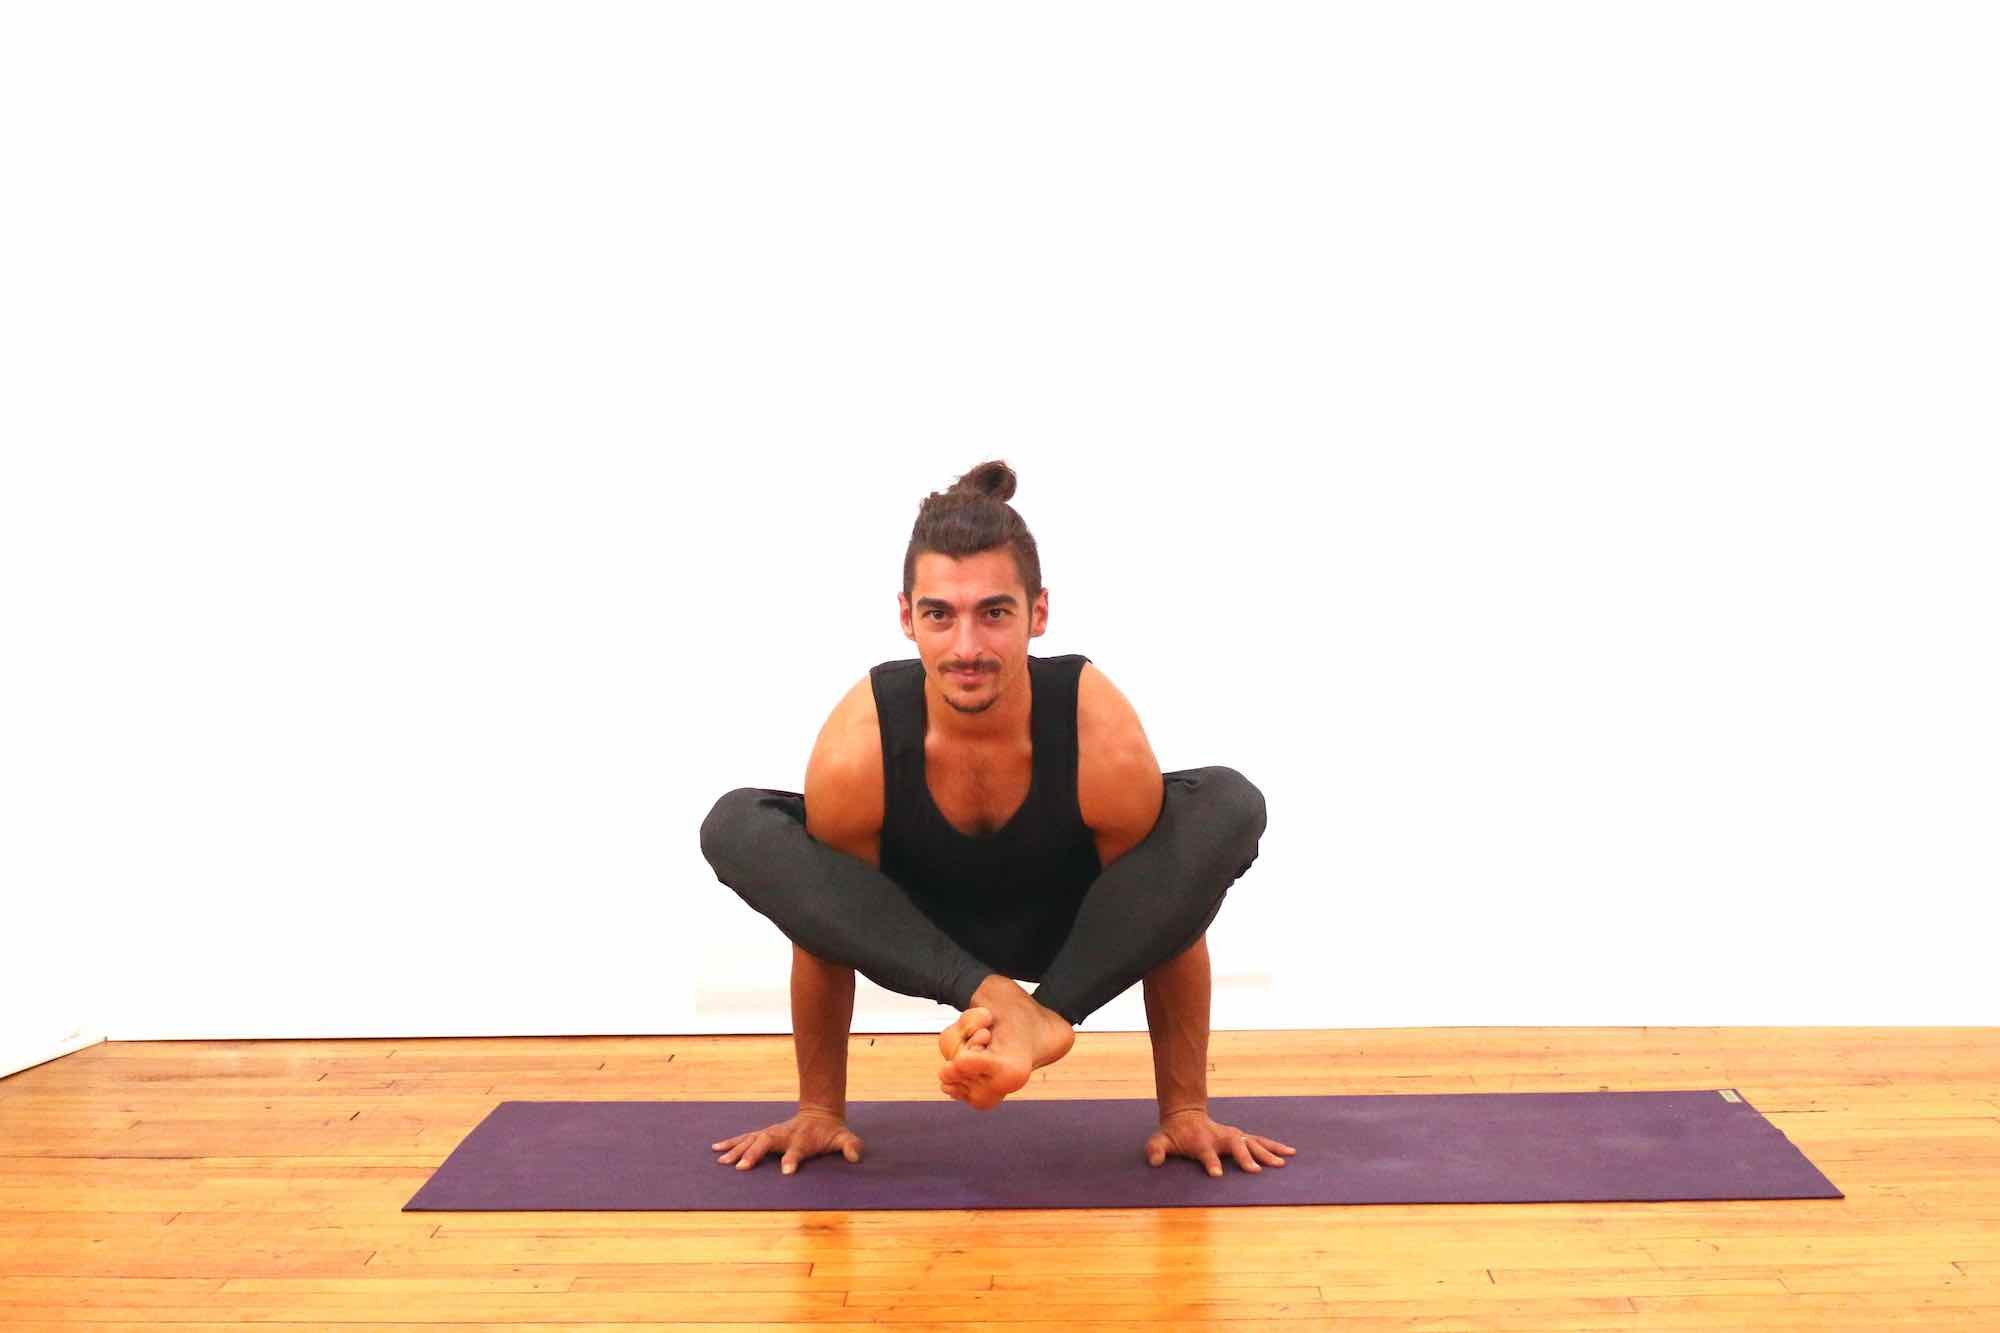 arm balances: yoga for strength and flexibility